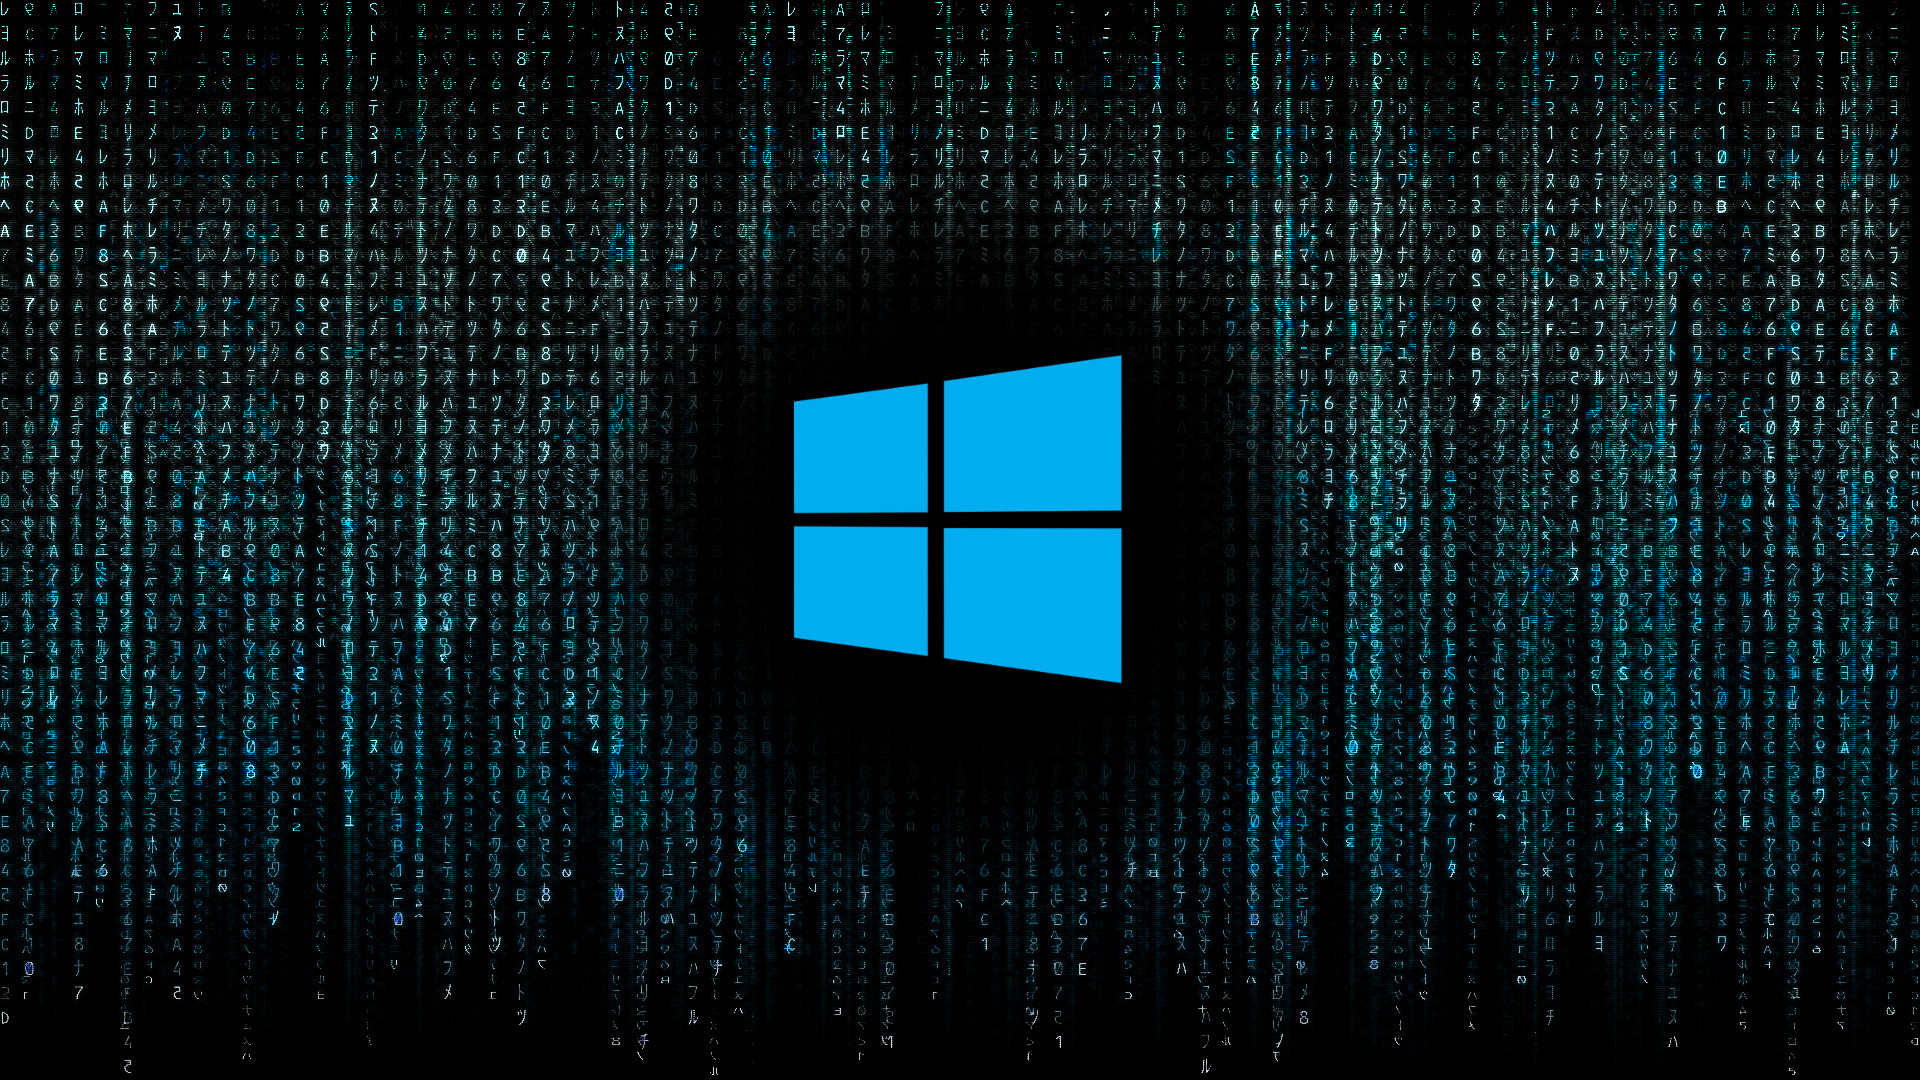 Windows 10 Original Wallpaper: Blue Matrix Wallpaper (56+ Images